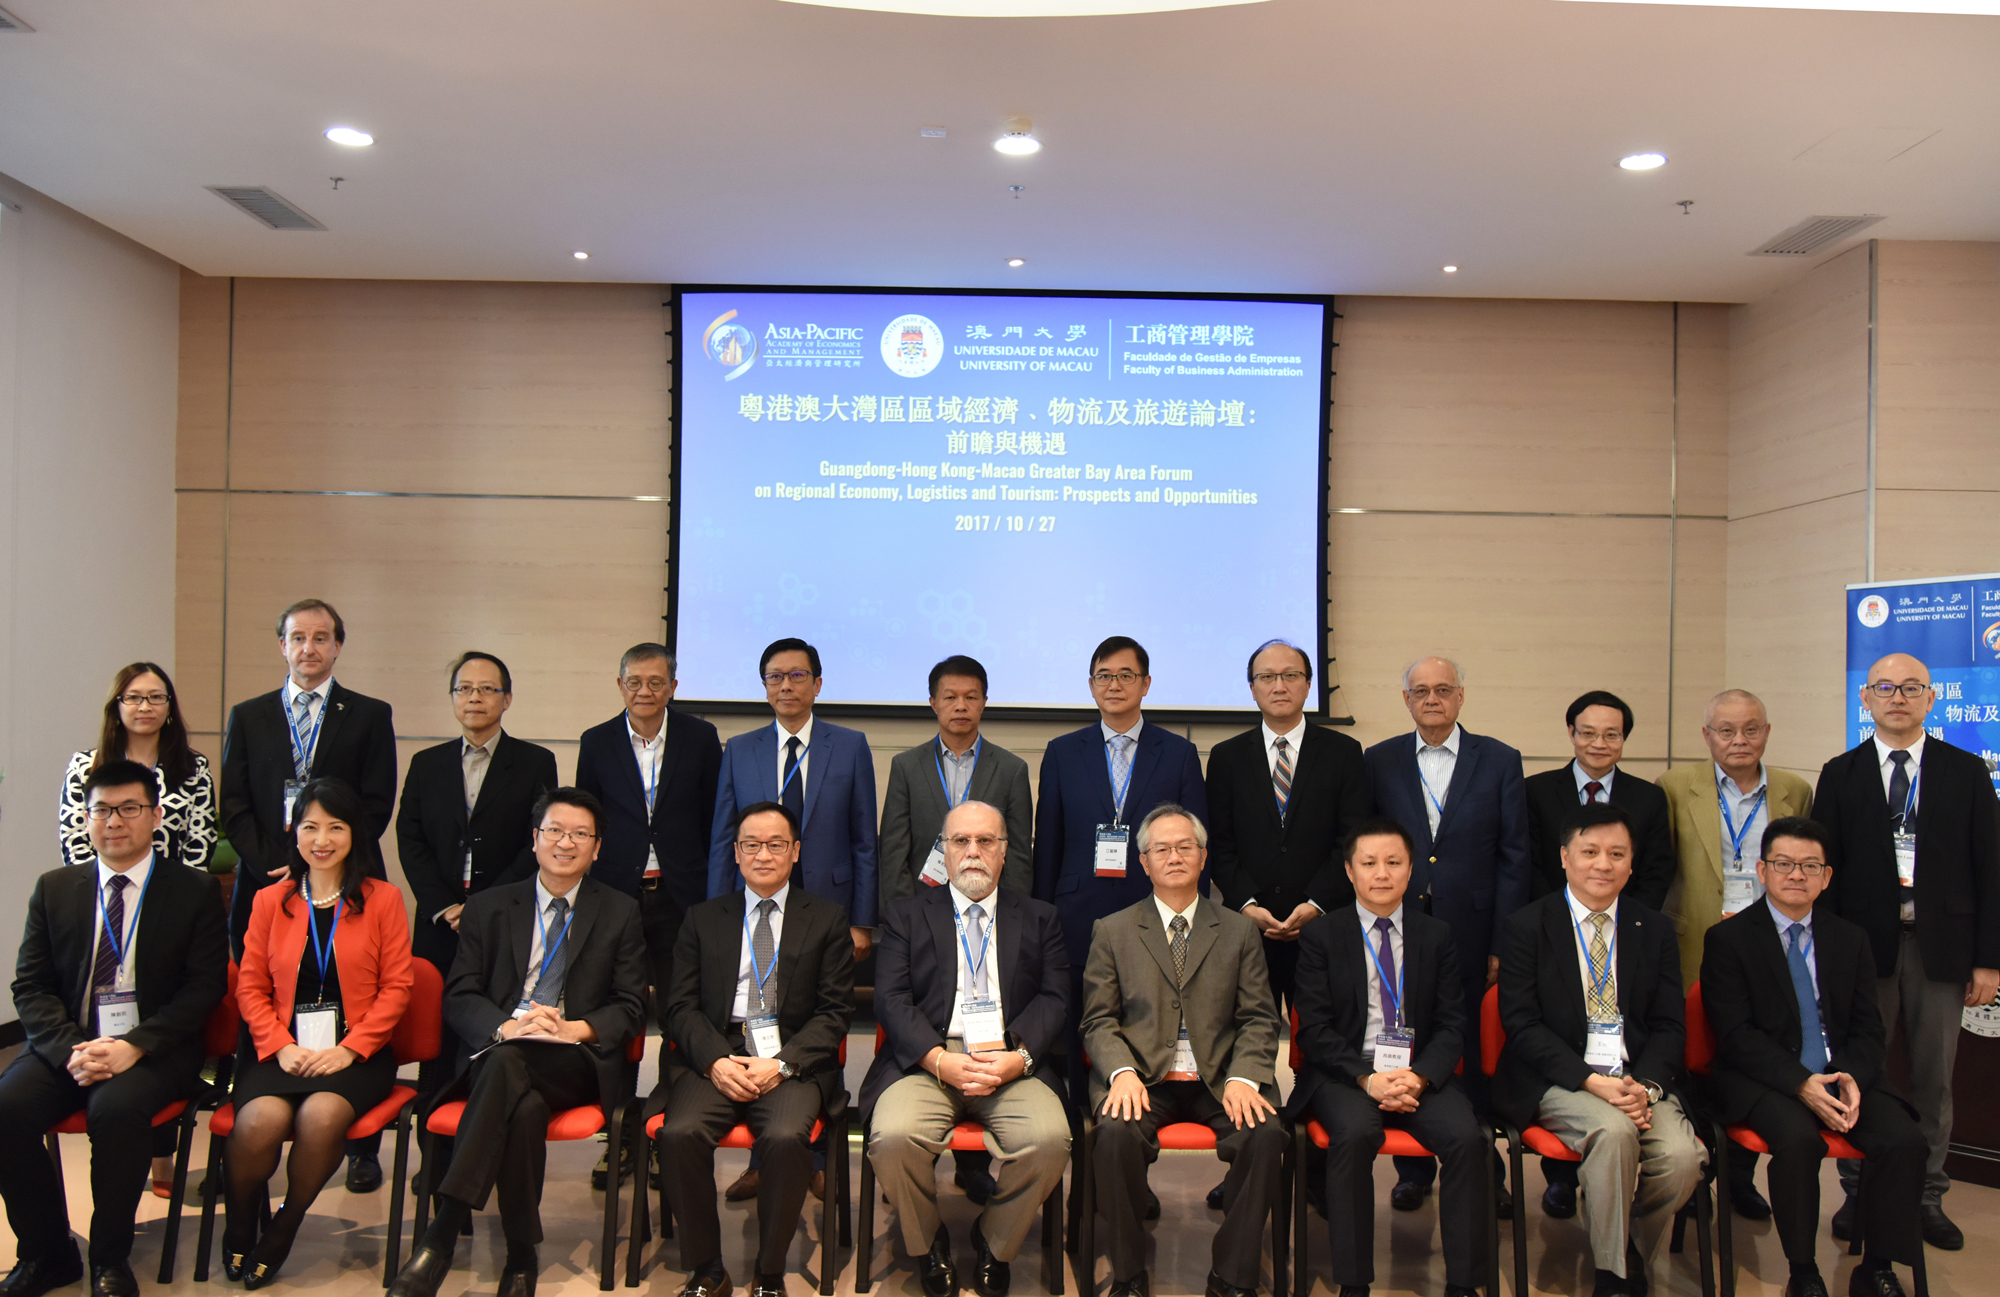 UM organises the Guangdong-Hong Kong-Macau Greater Bay Area Forum on Regional Economy, Logistics and Tourism: Prospects and Opportunities